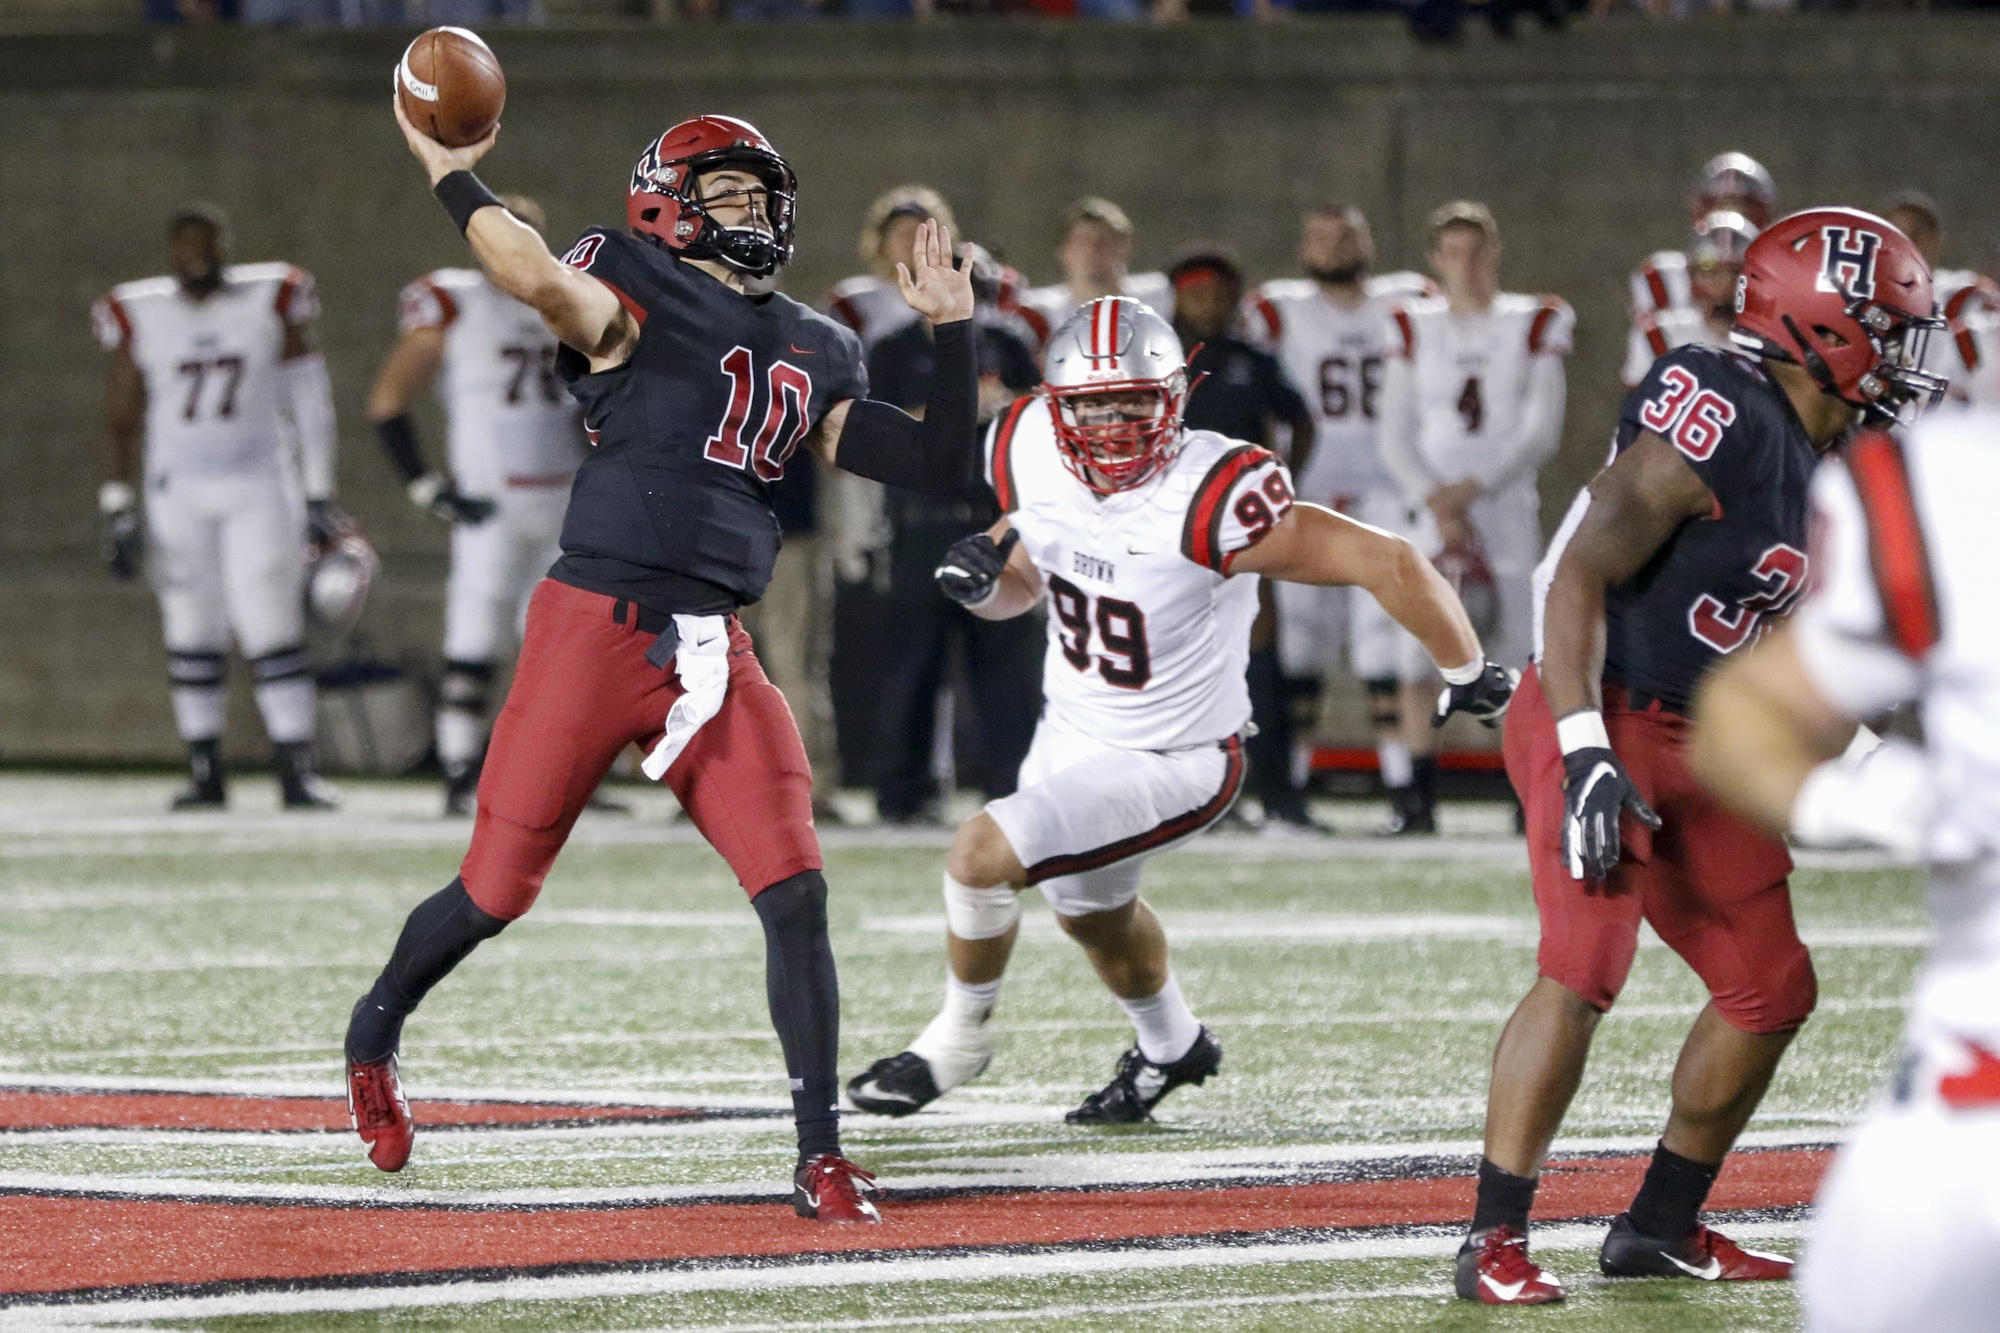 Junior quarterback Jake Smith tossed four touchdowns in Friday's victory over Brown. The mark represents a career best for the third-year.